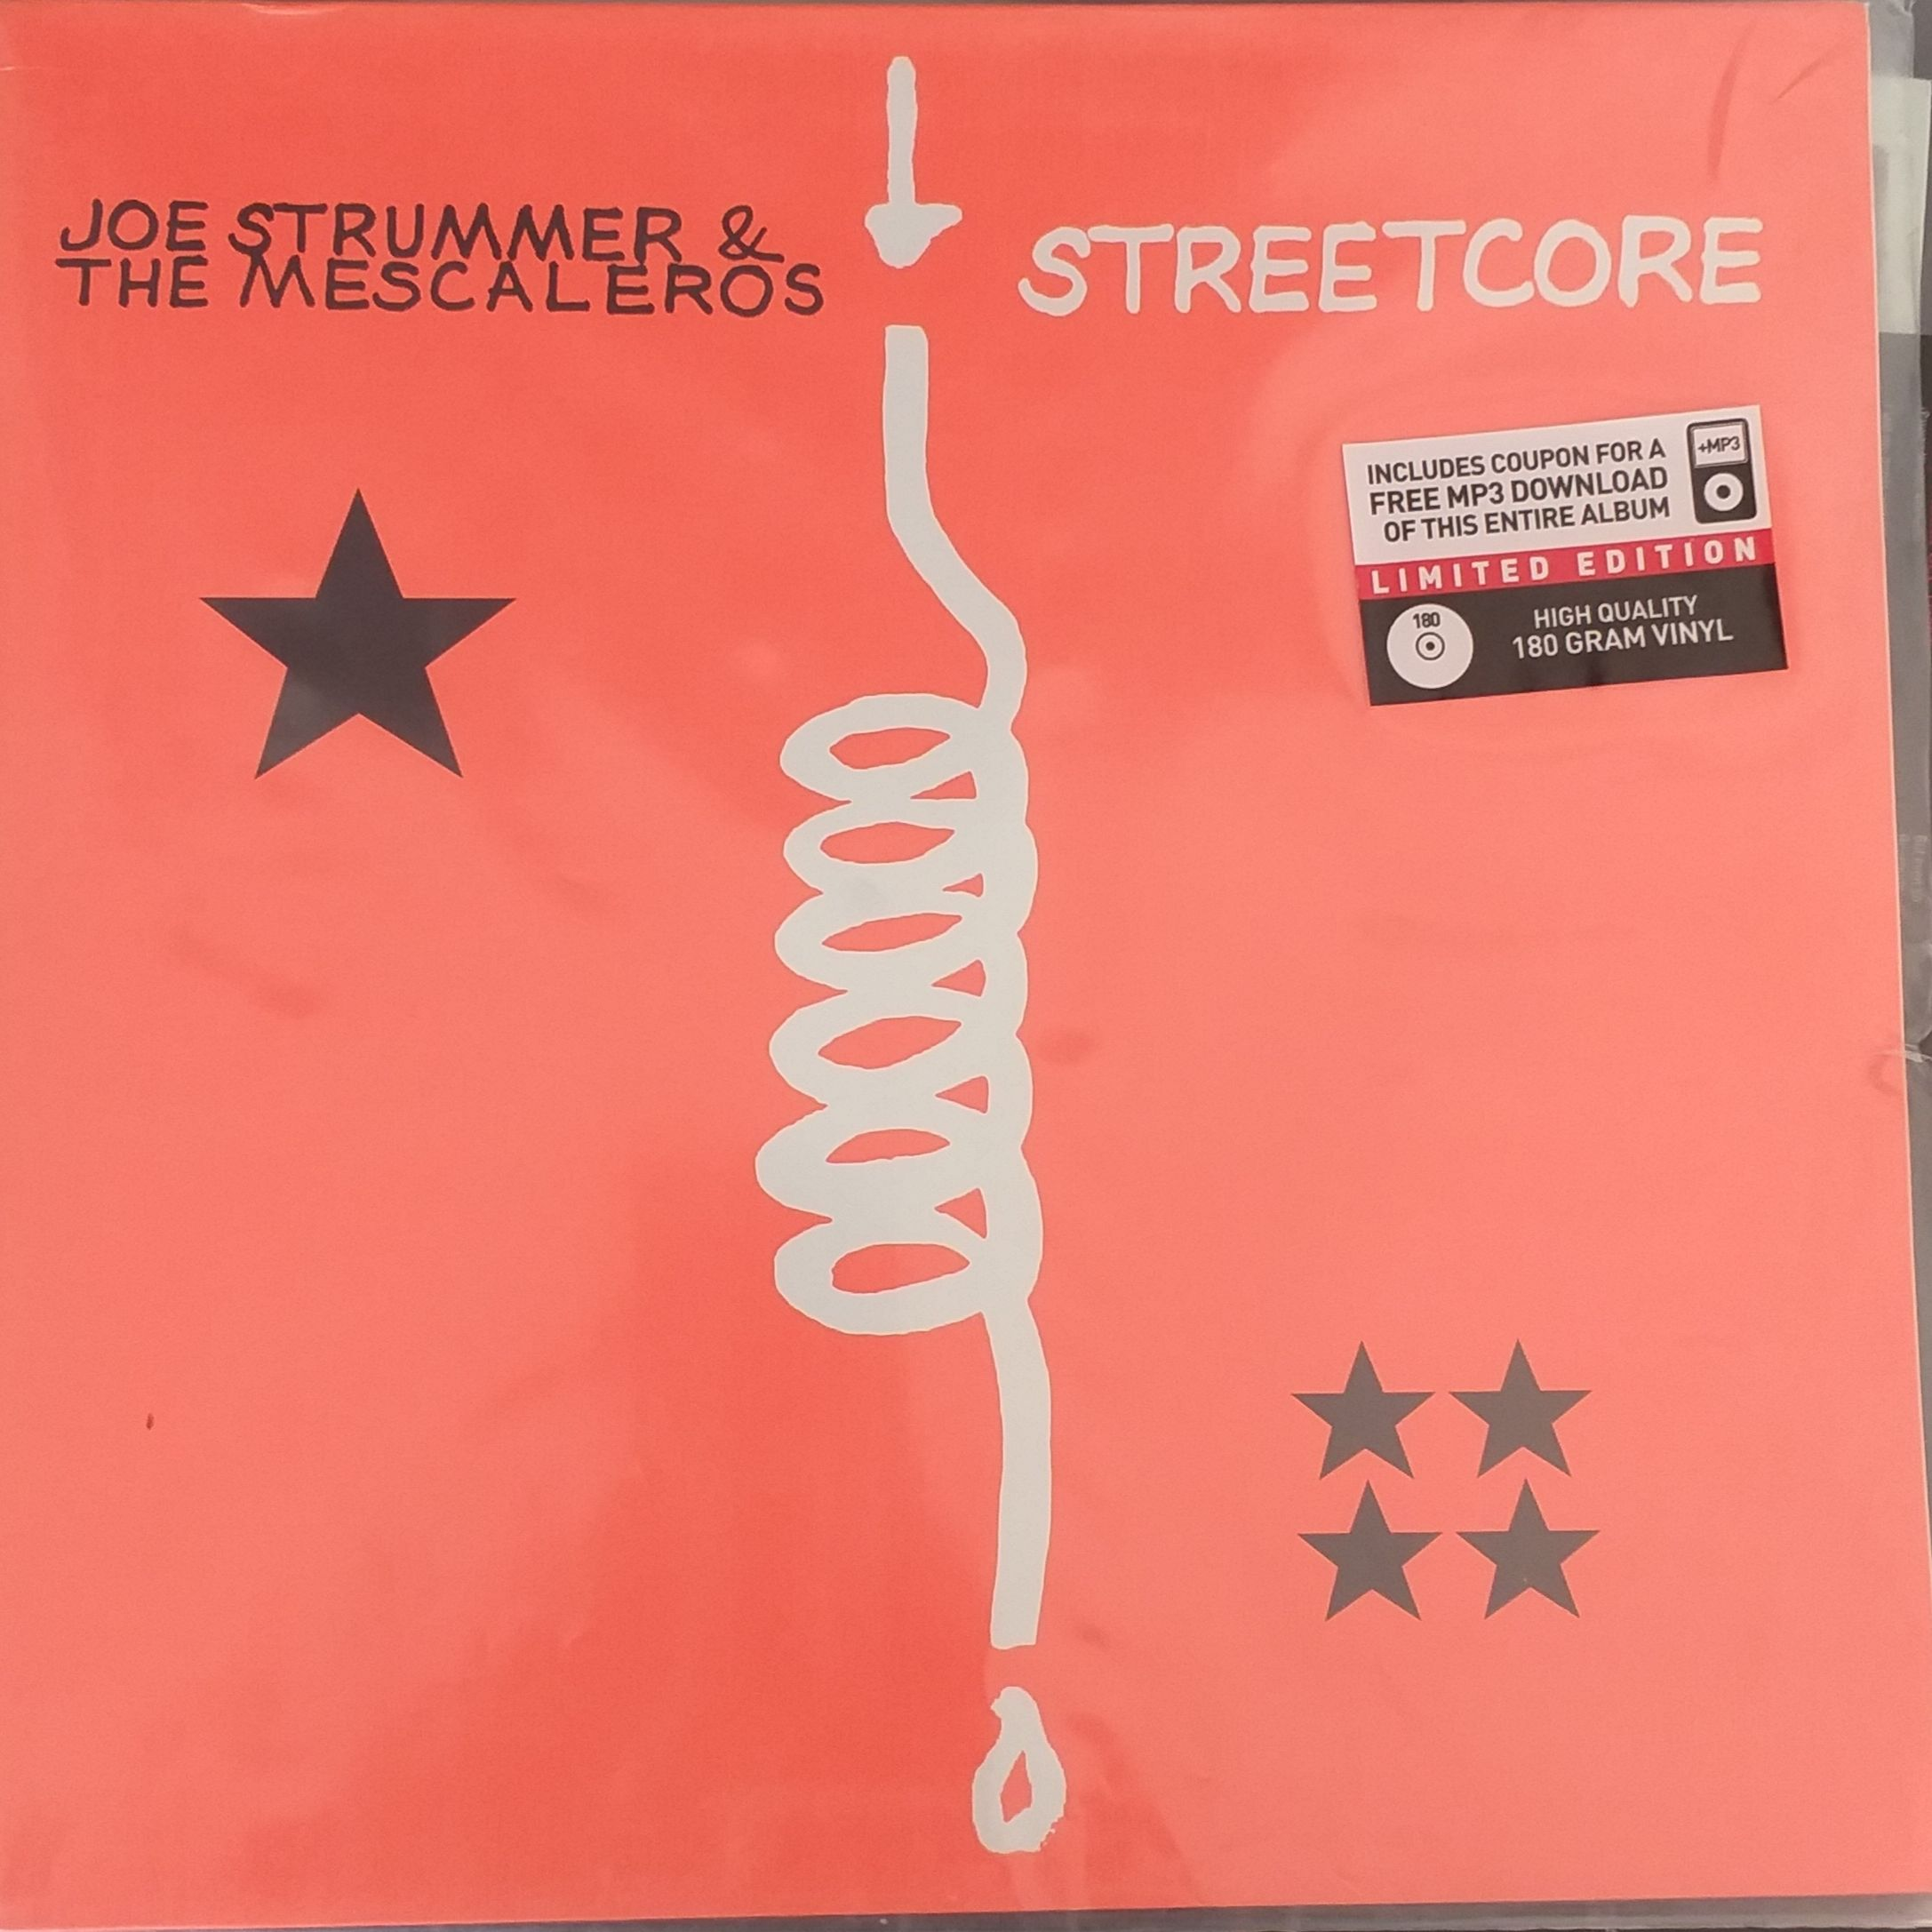 Joe Strummer and the mescaleros Streetcore LP undefined